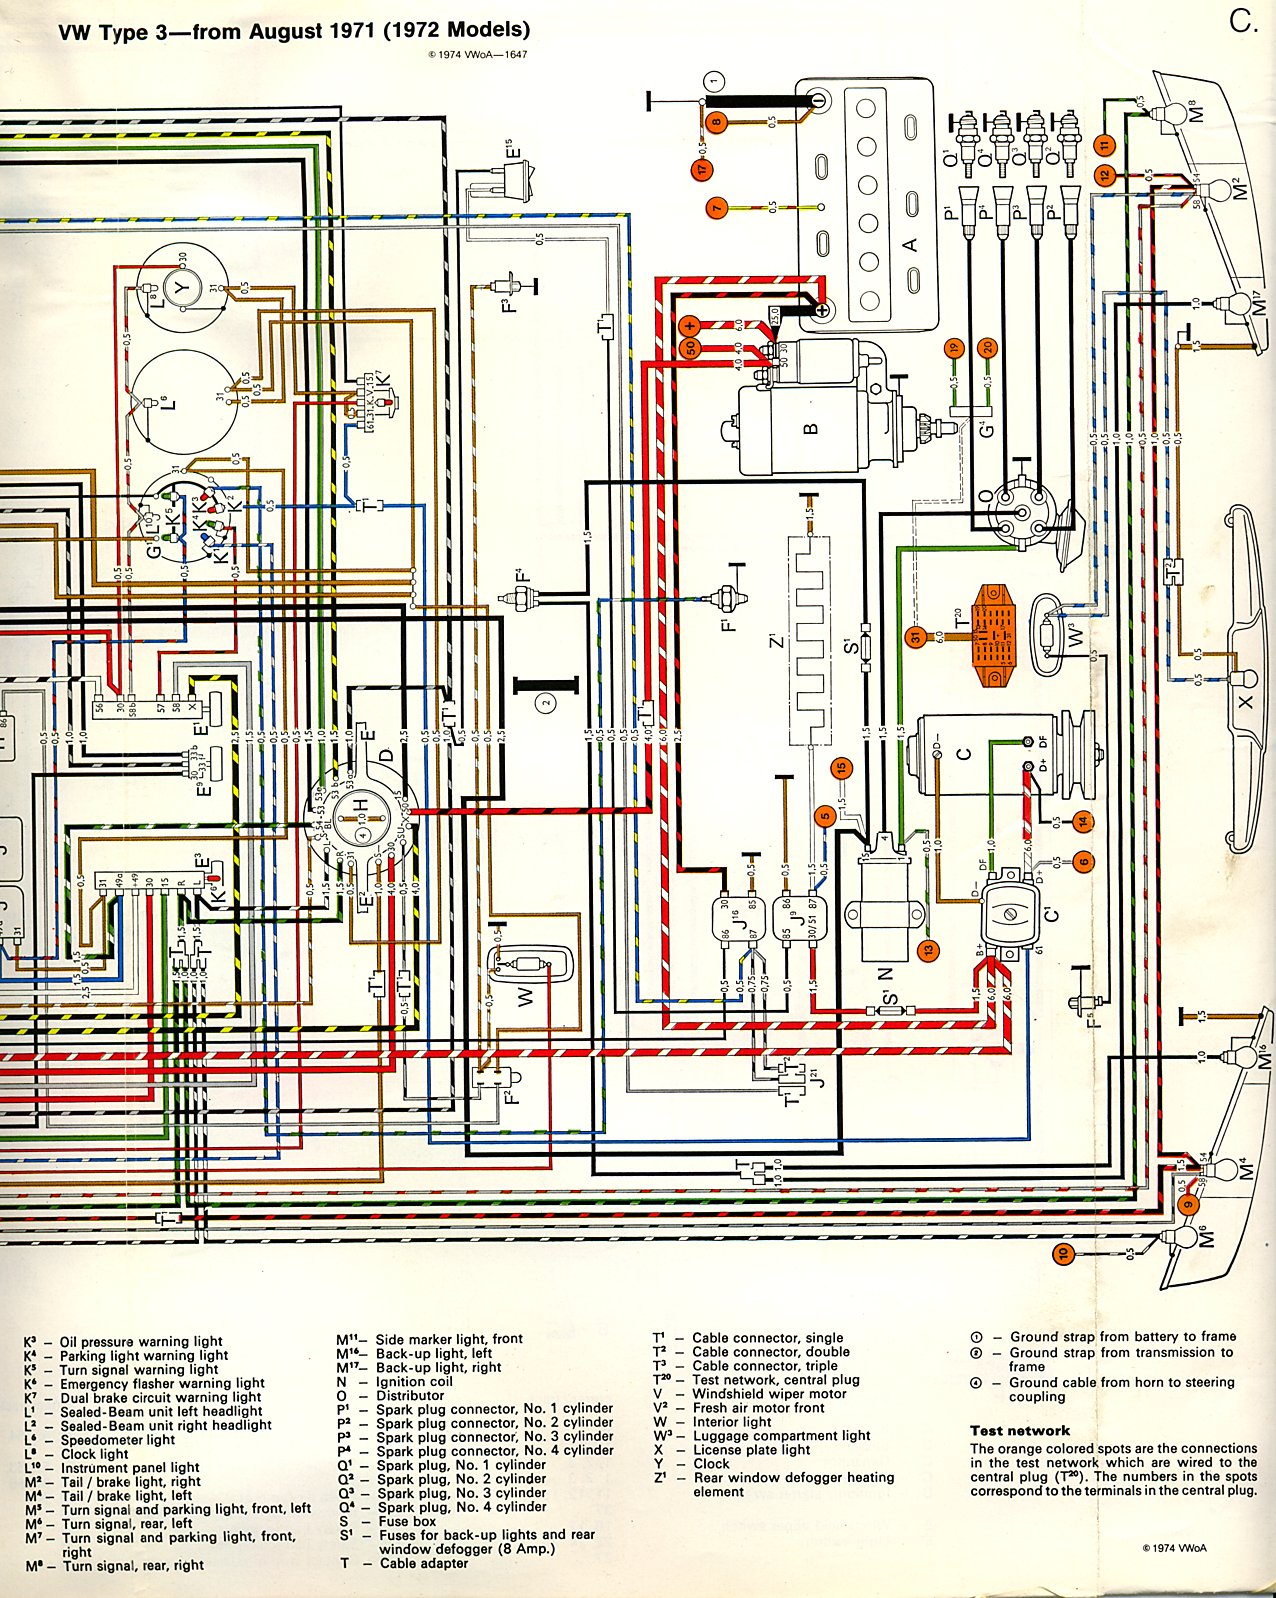 Vw Beetle Simple Wiring Diagram Get Free Image About Wiring Diagram